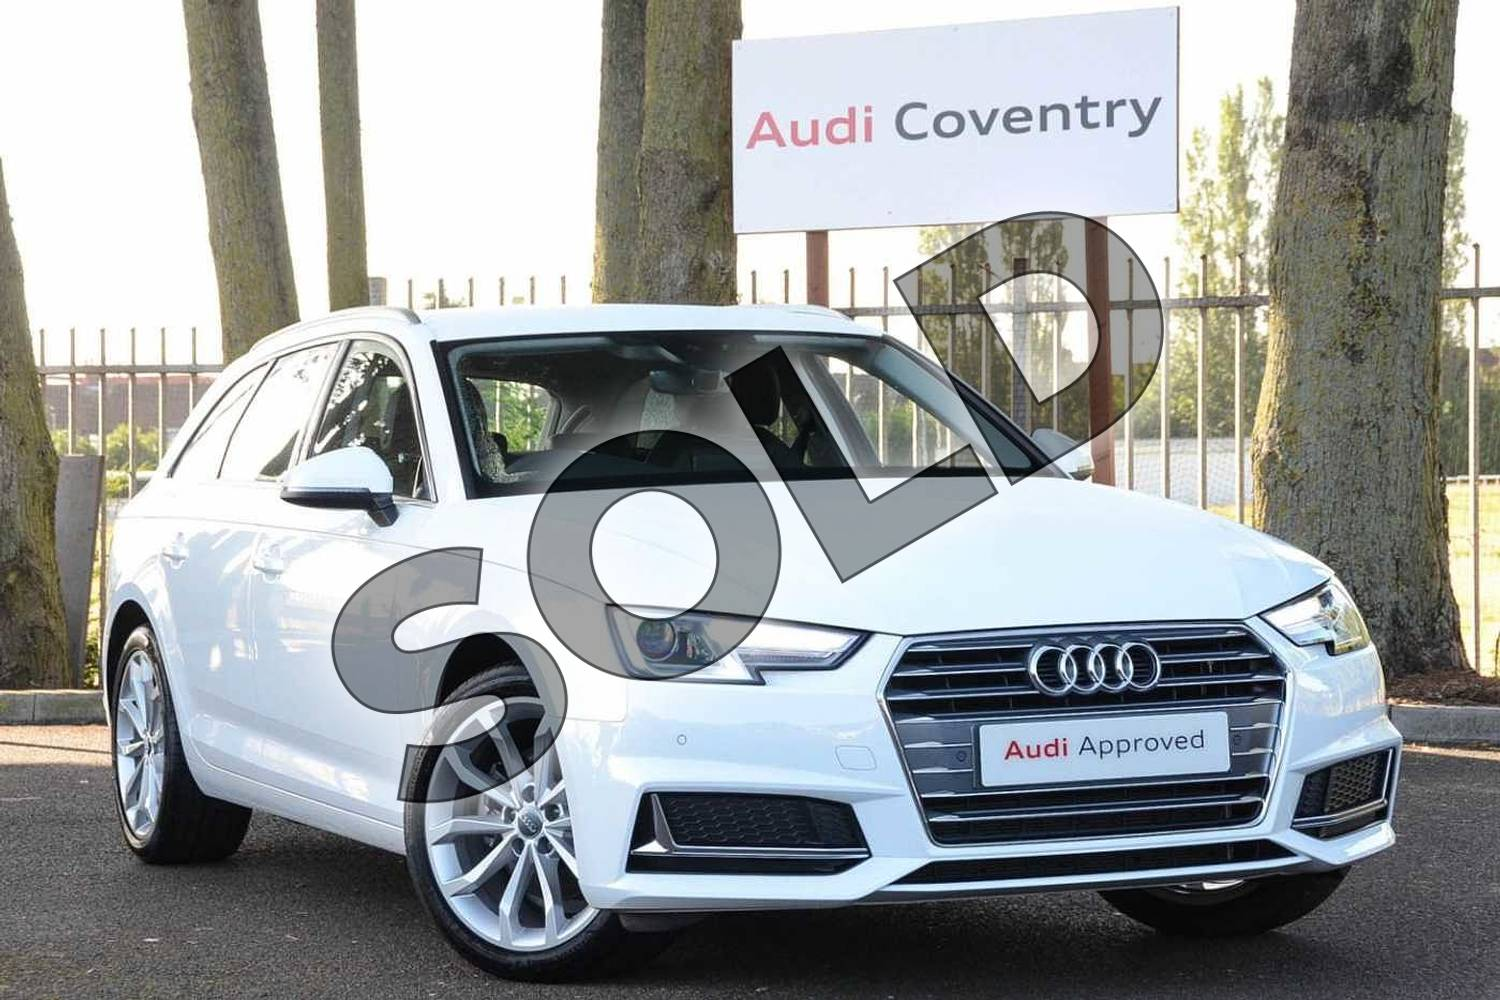 2019 Audi A4 Diesel Avant 35 TDI Sport 5dr S Tronic in Ibis White at Coventry Audi